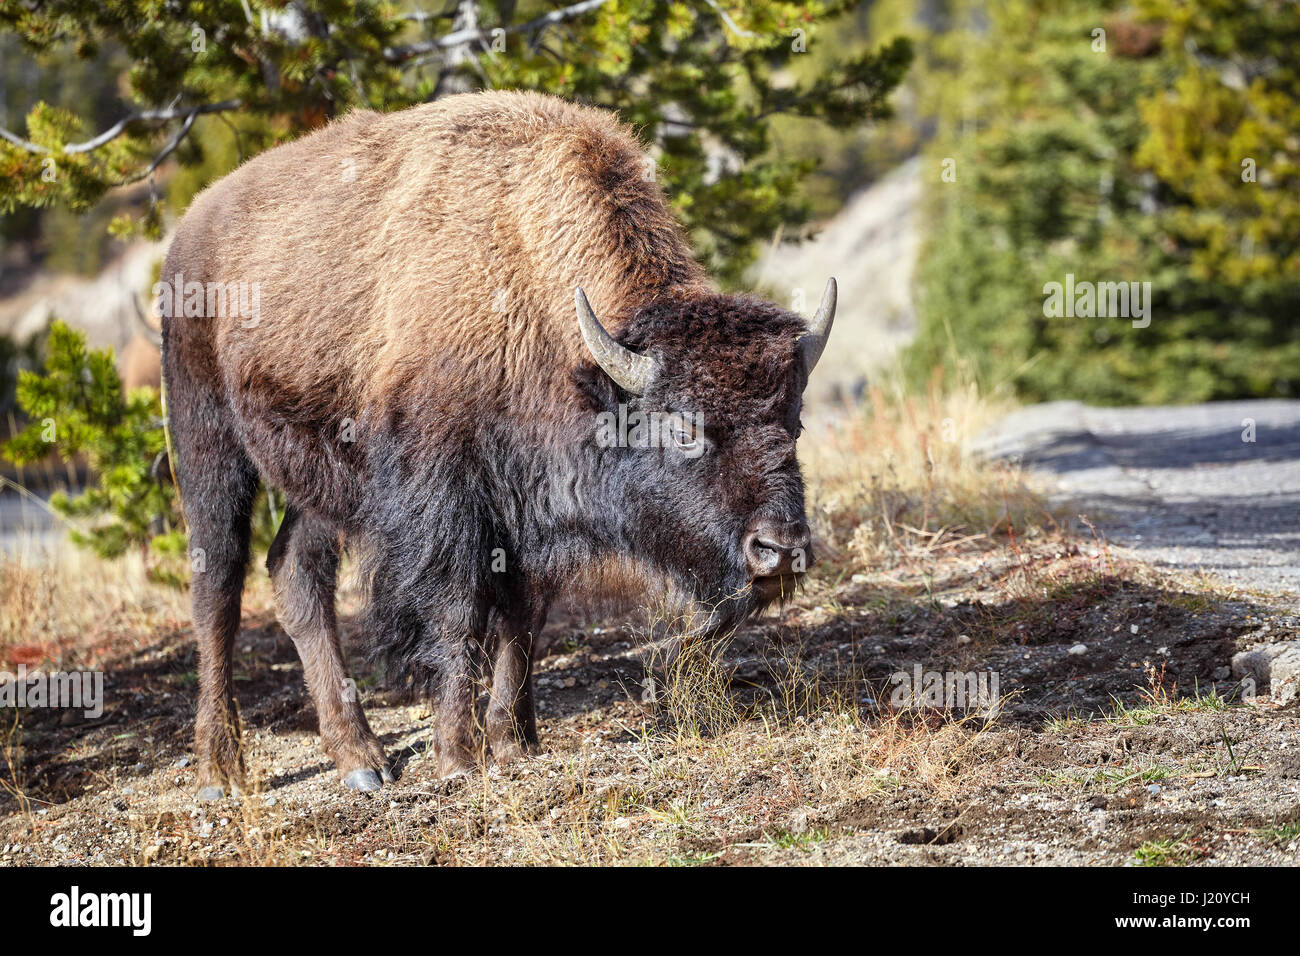 Young American bison (Bison bison) grazing in Yellowstone National Park, Wyoming, USA. - Stock Image